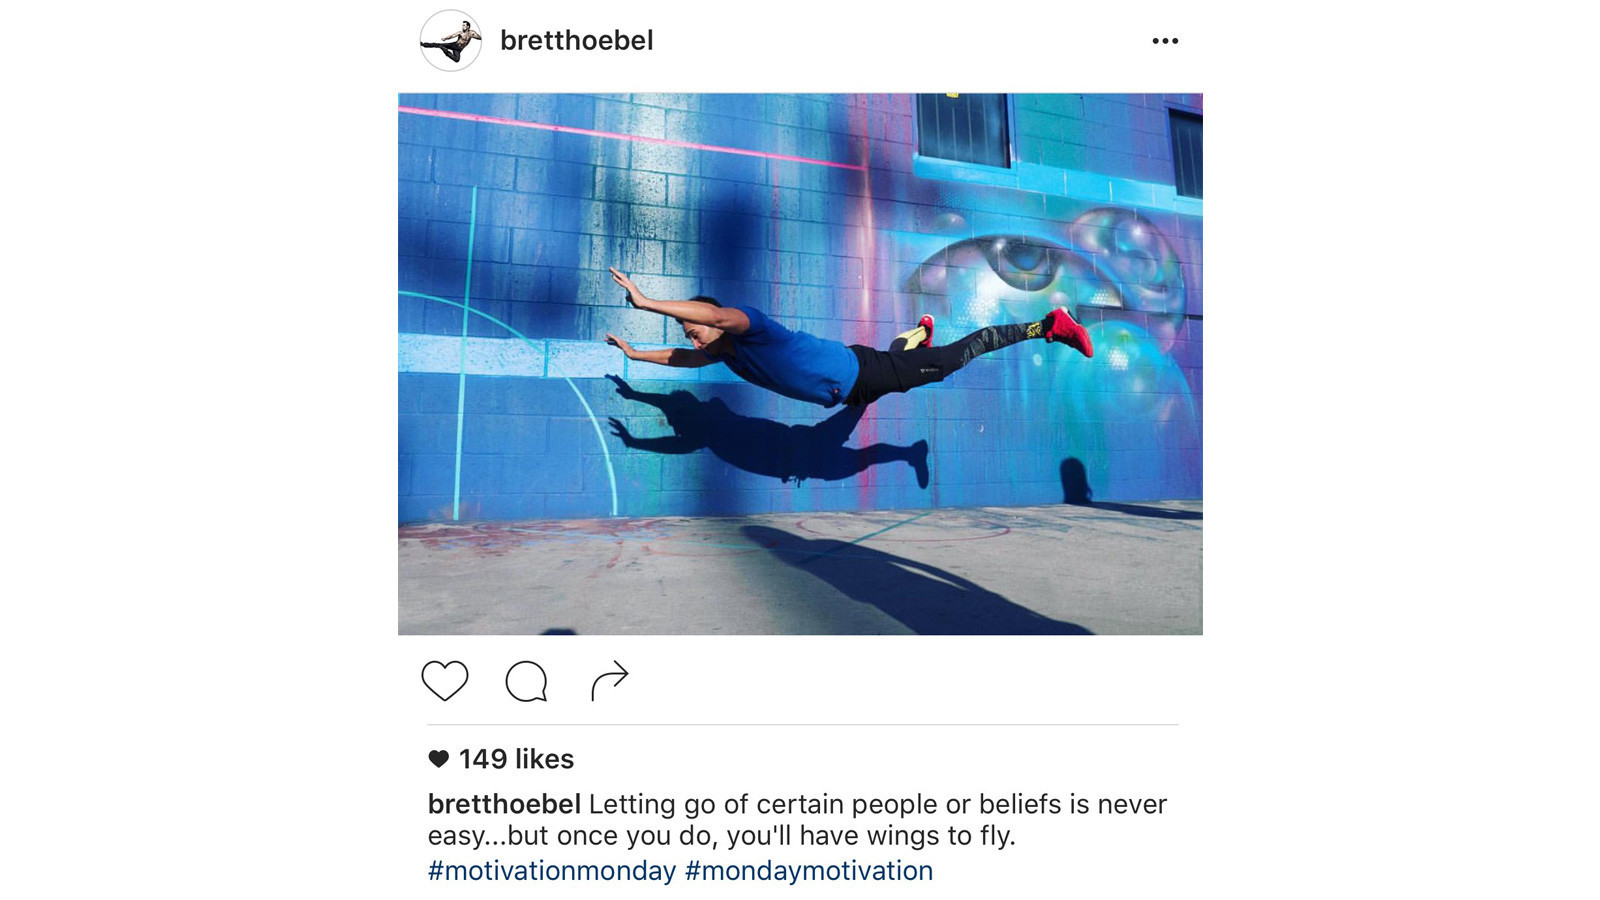 Brett Hoebel is a former trainer on NBC's